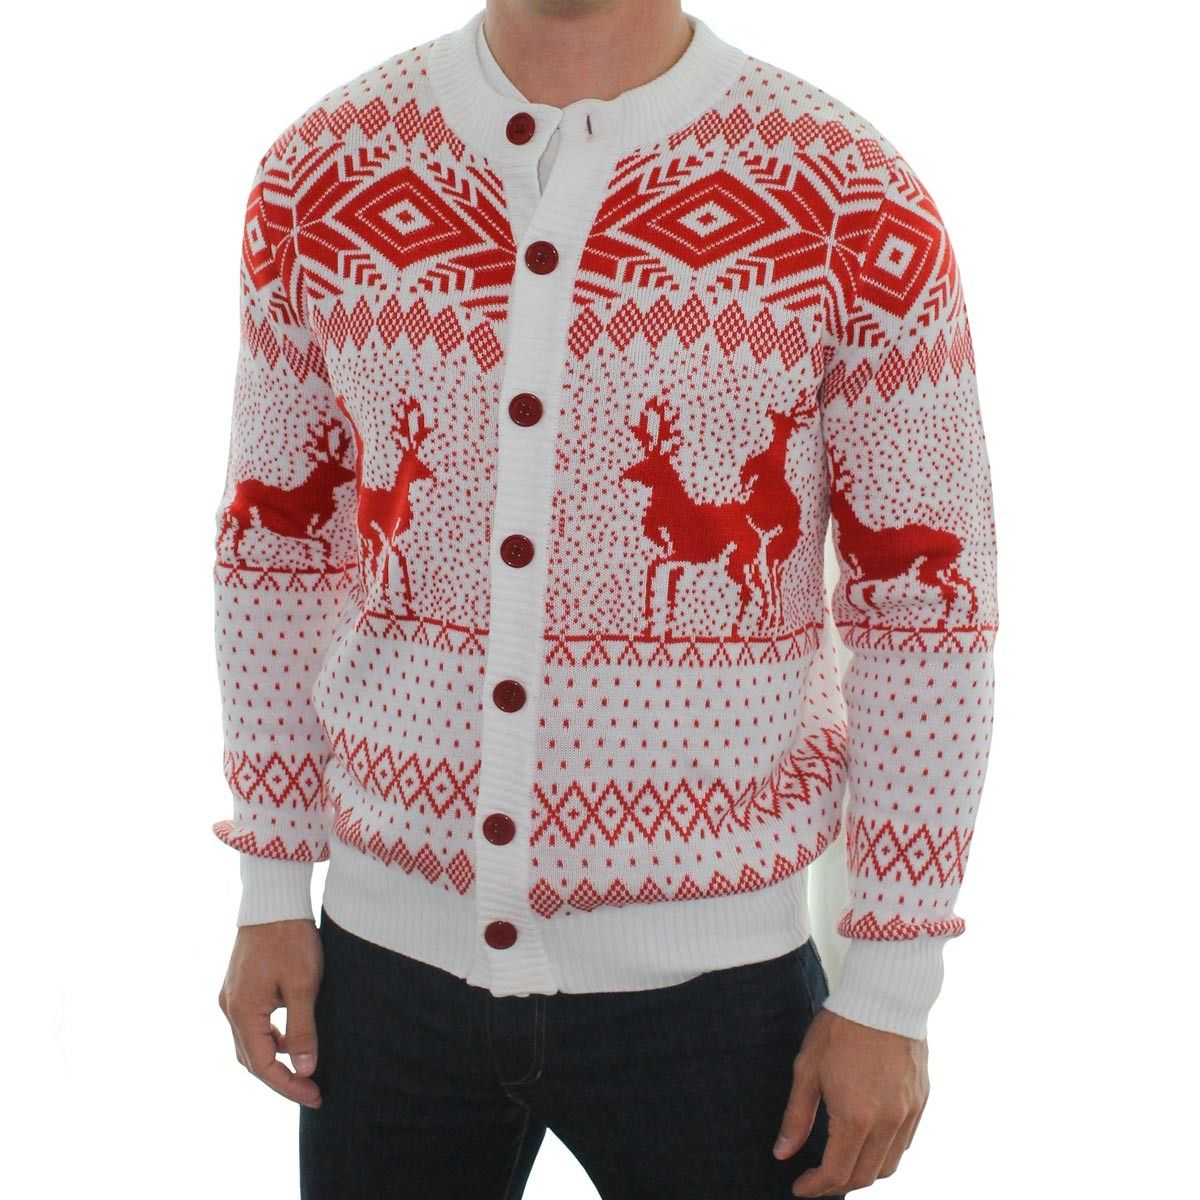 Men's Reindeer Double Date Cardigan (White) | Tipsy elves, Ugliest ...